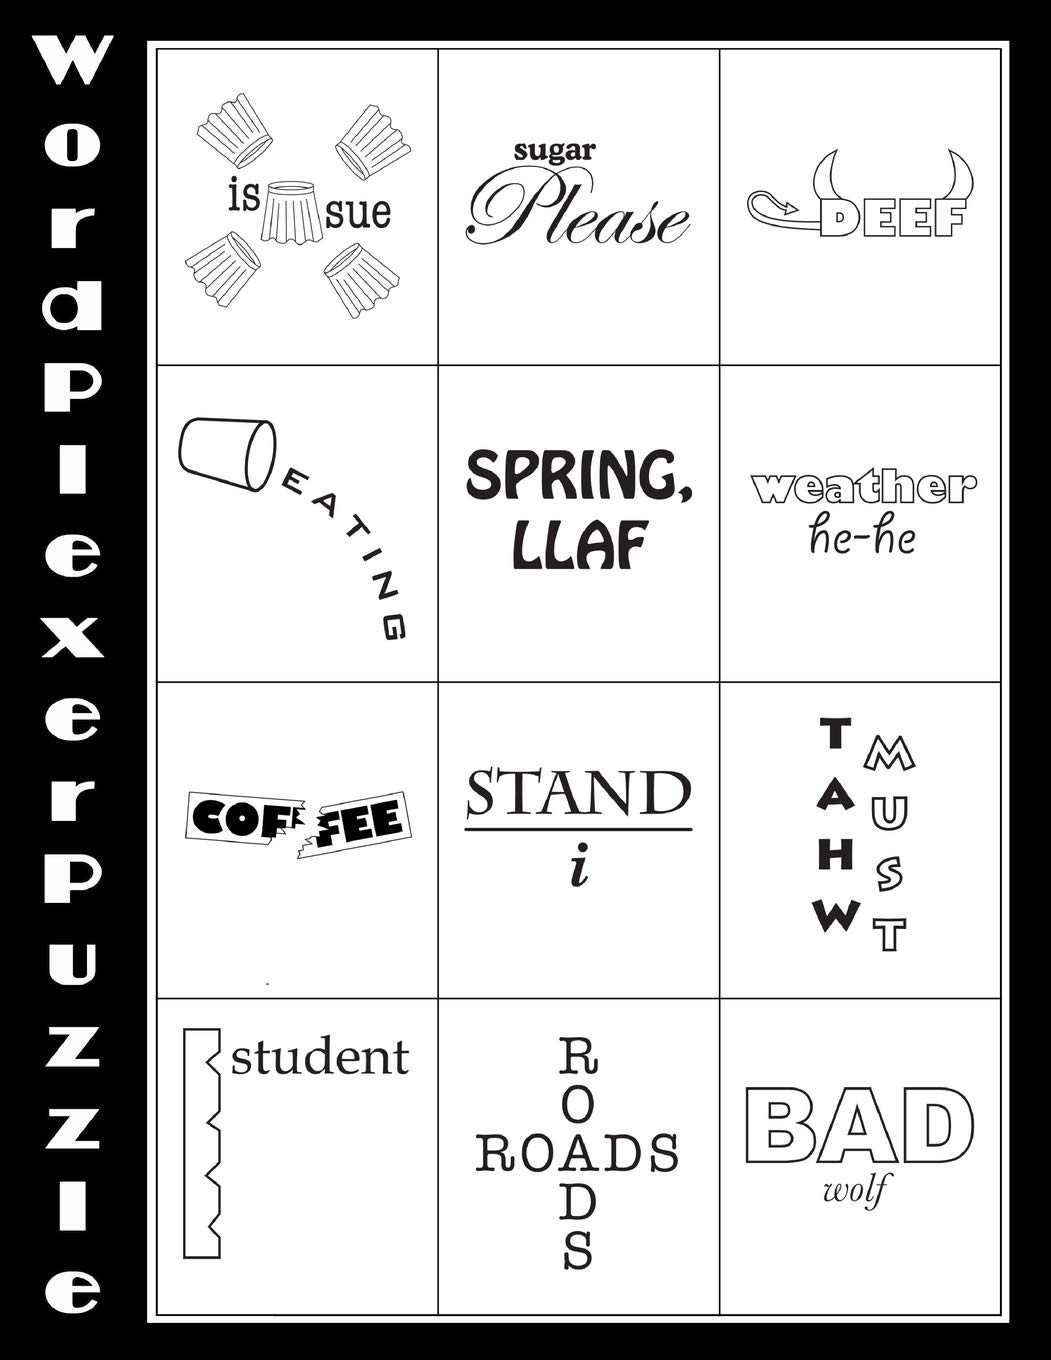 Rebus Puzzles for Adults Printable Word Plexer Puzzle Word Plexers are Word Based Puzzles that